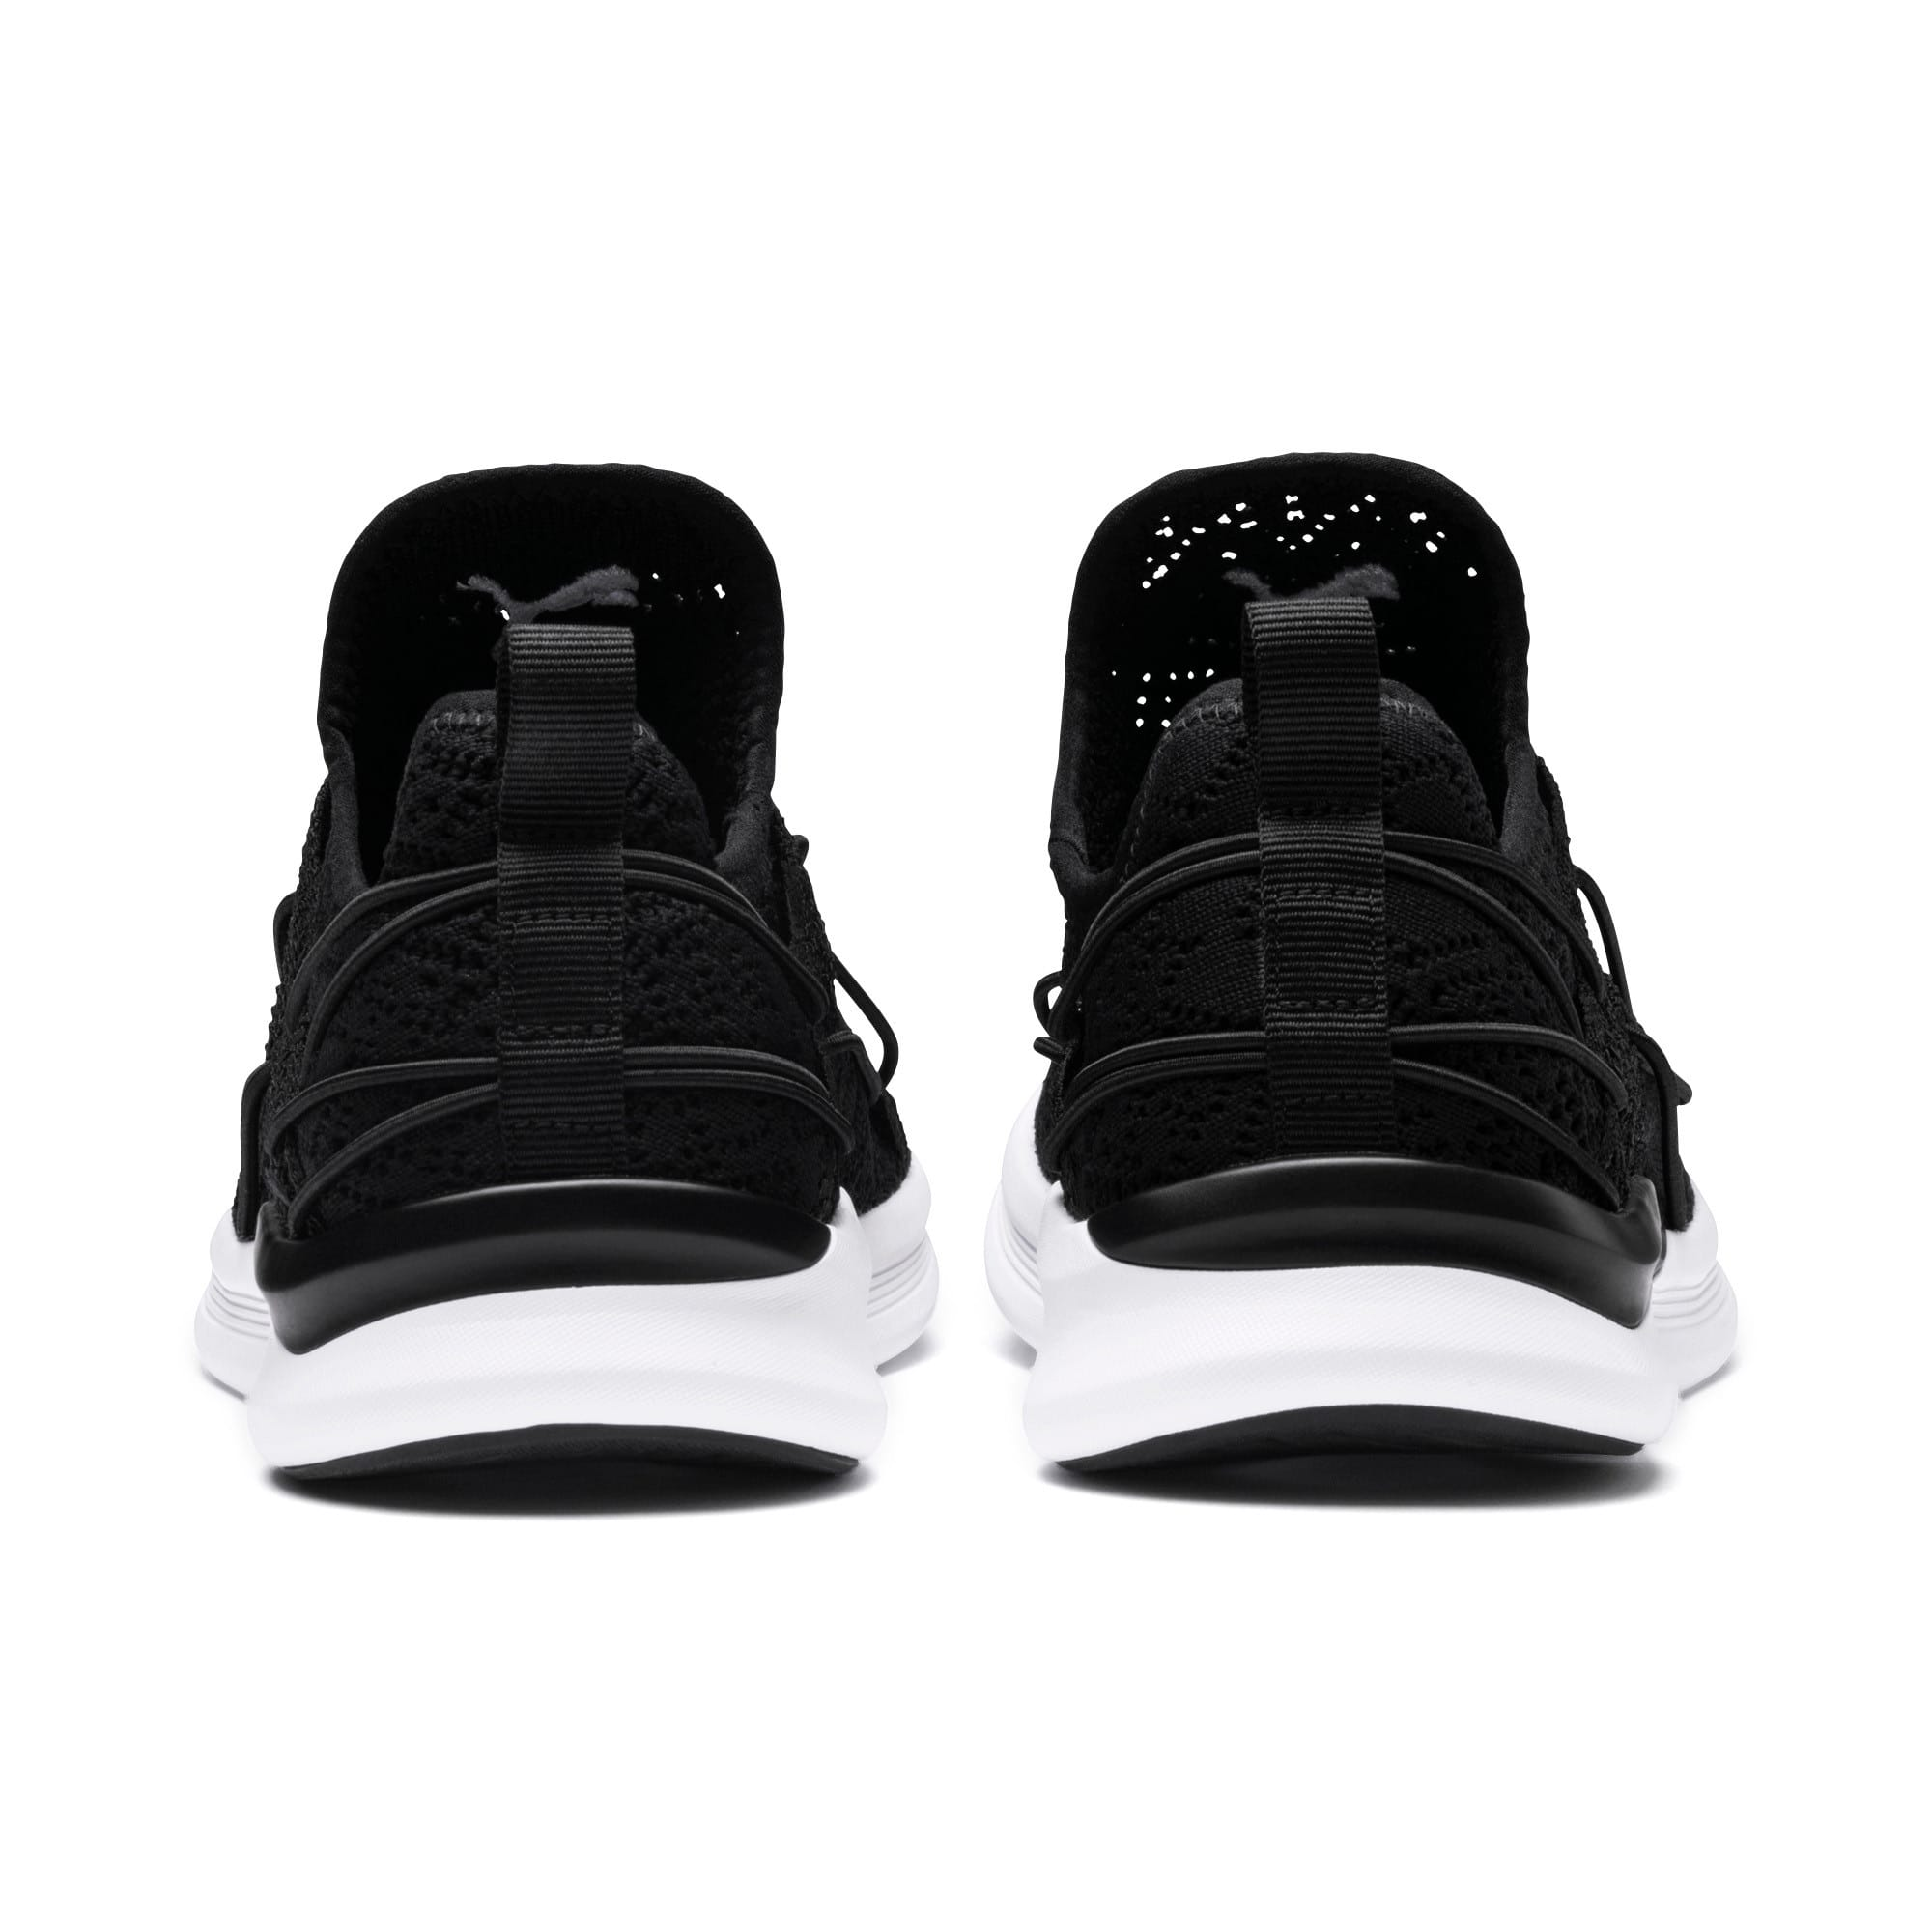 Thumbnail 3 of IGNITE Flash Sensua Wn s Puma Black-Puma, Puma Black-Puma White, medium-IND